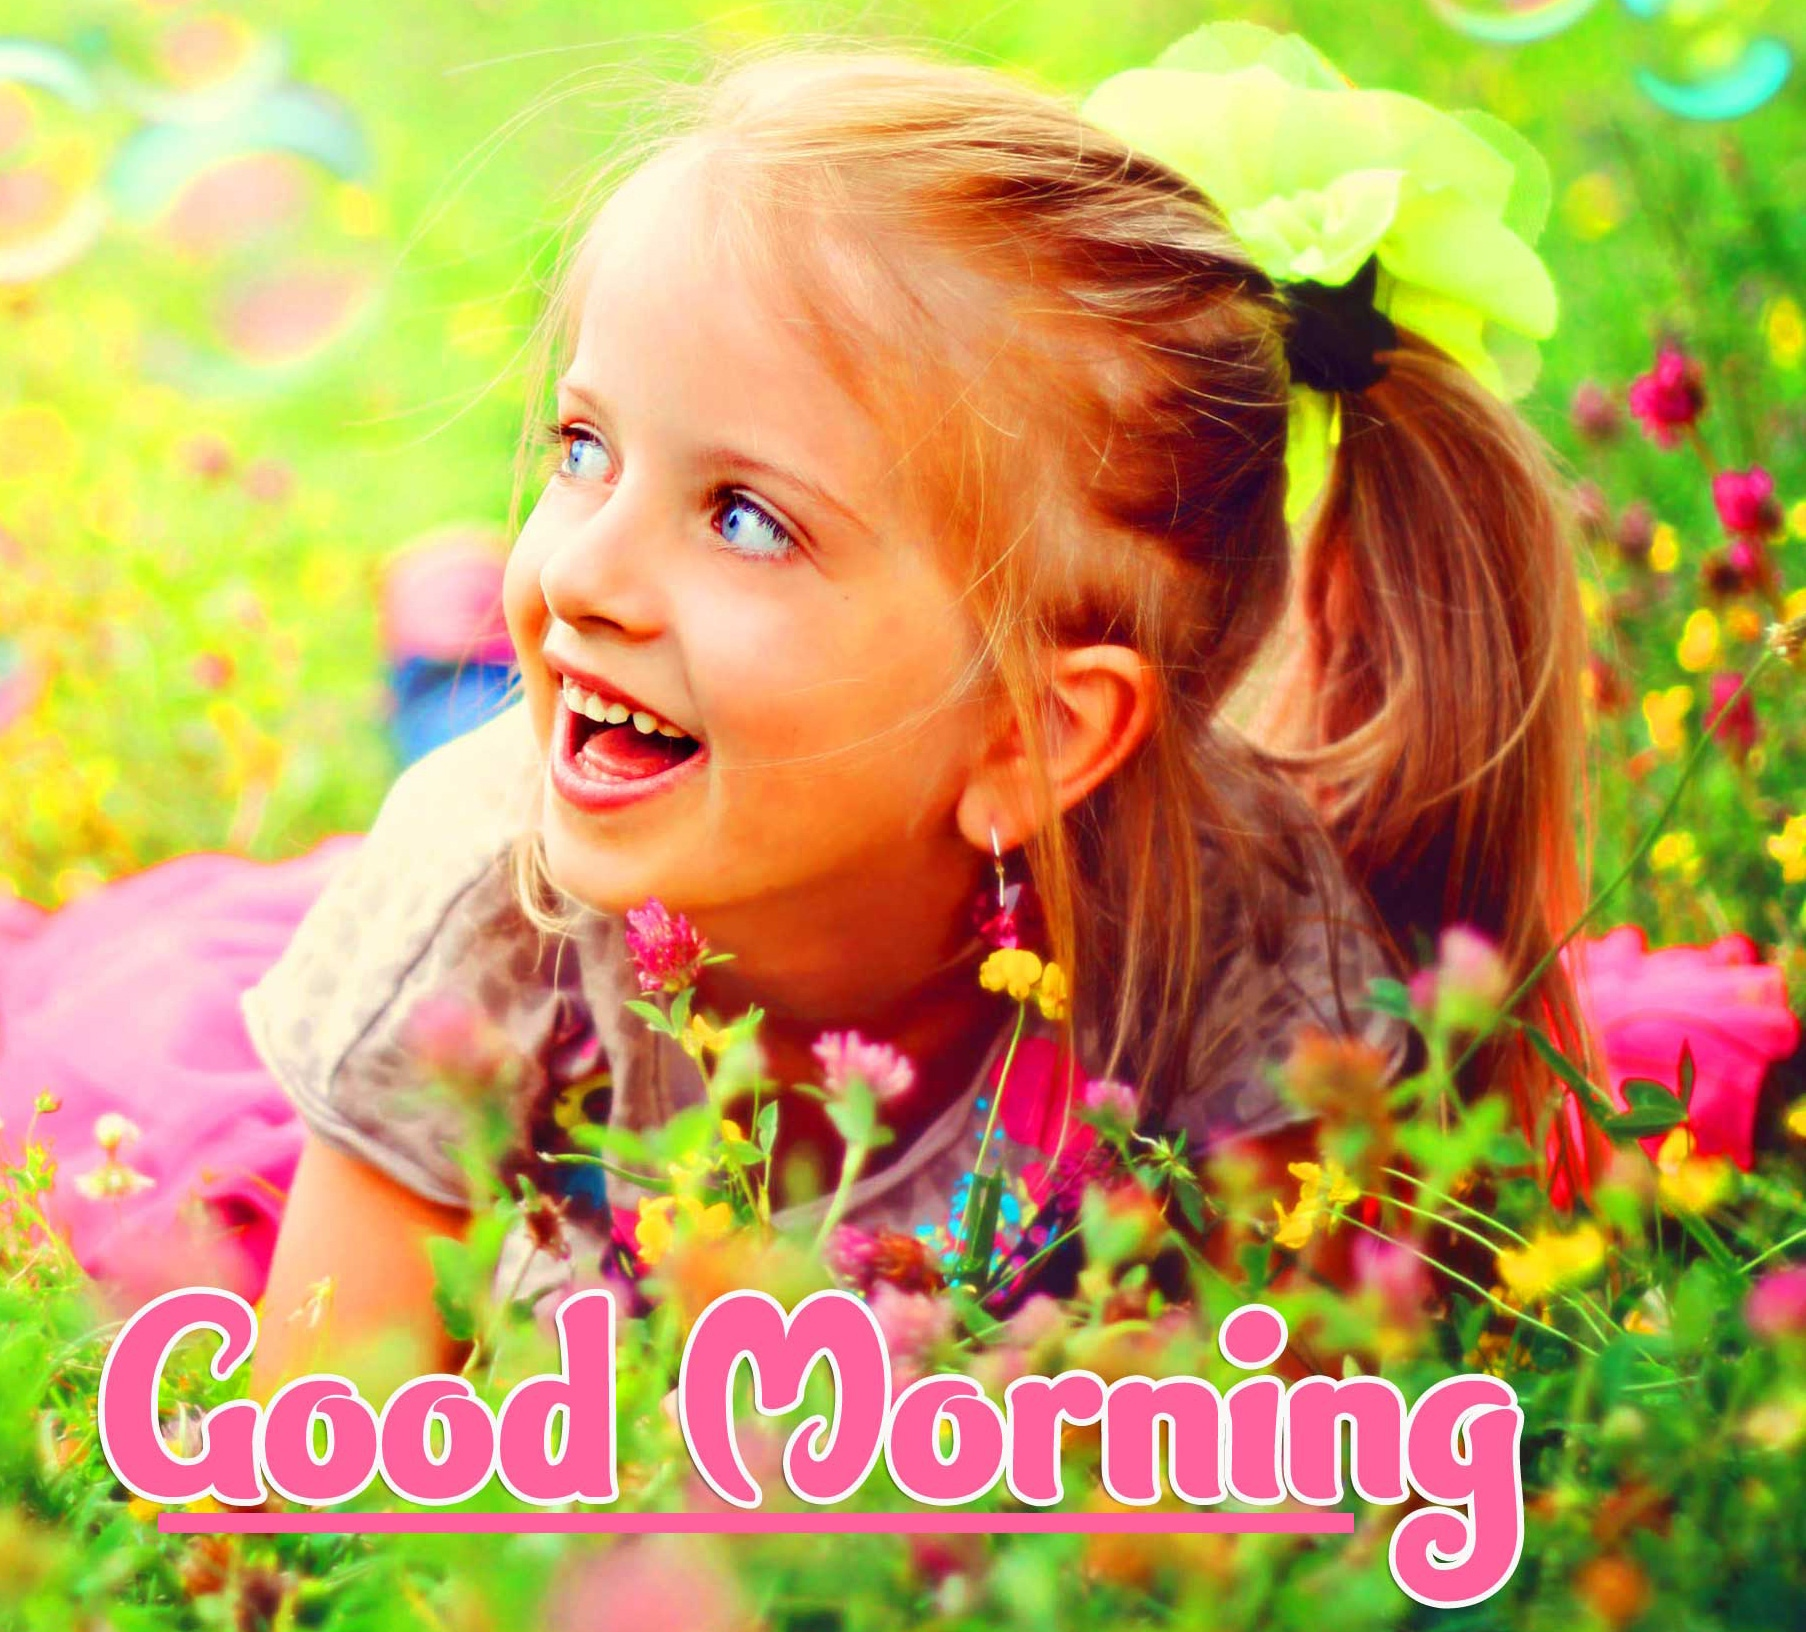 Cute Baby 2021 Good Morning Images Pics Download Free